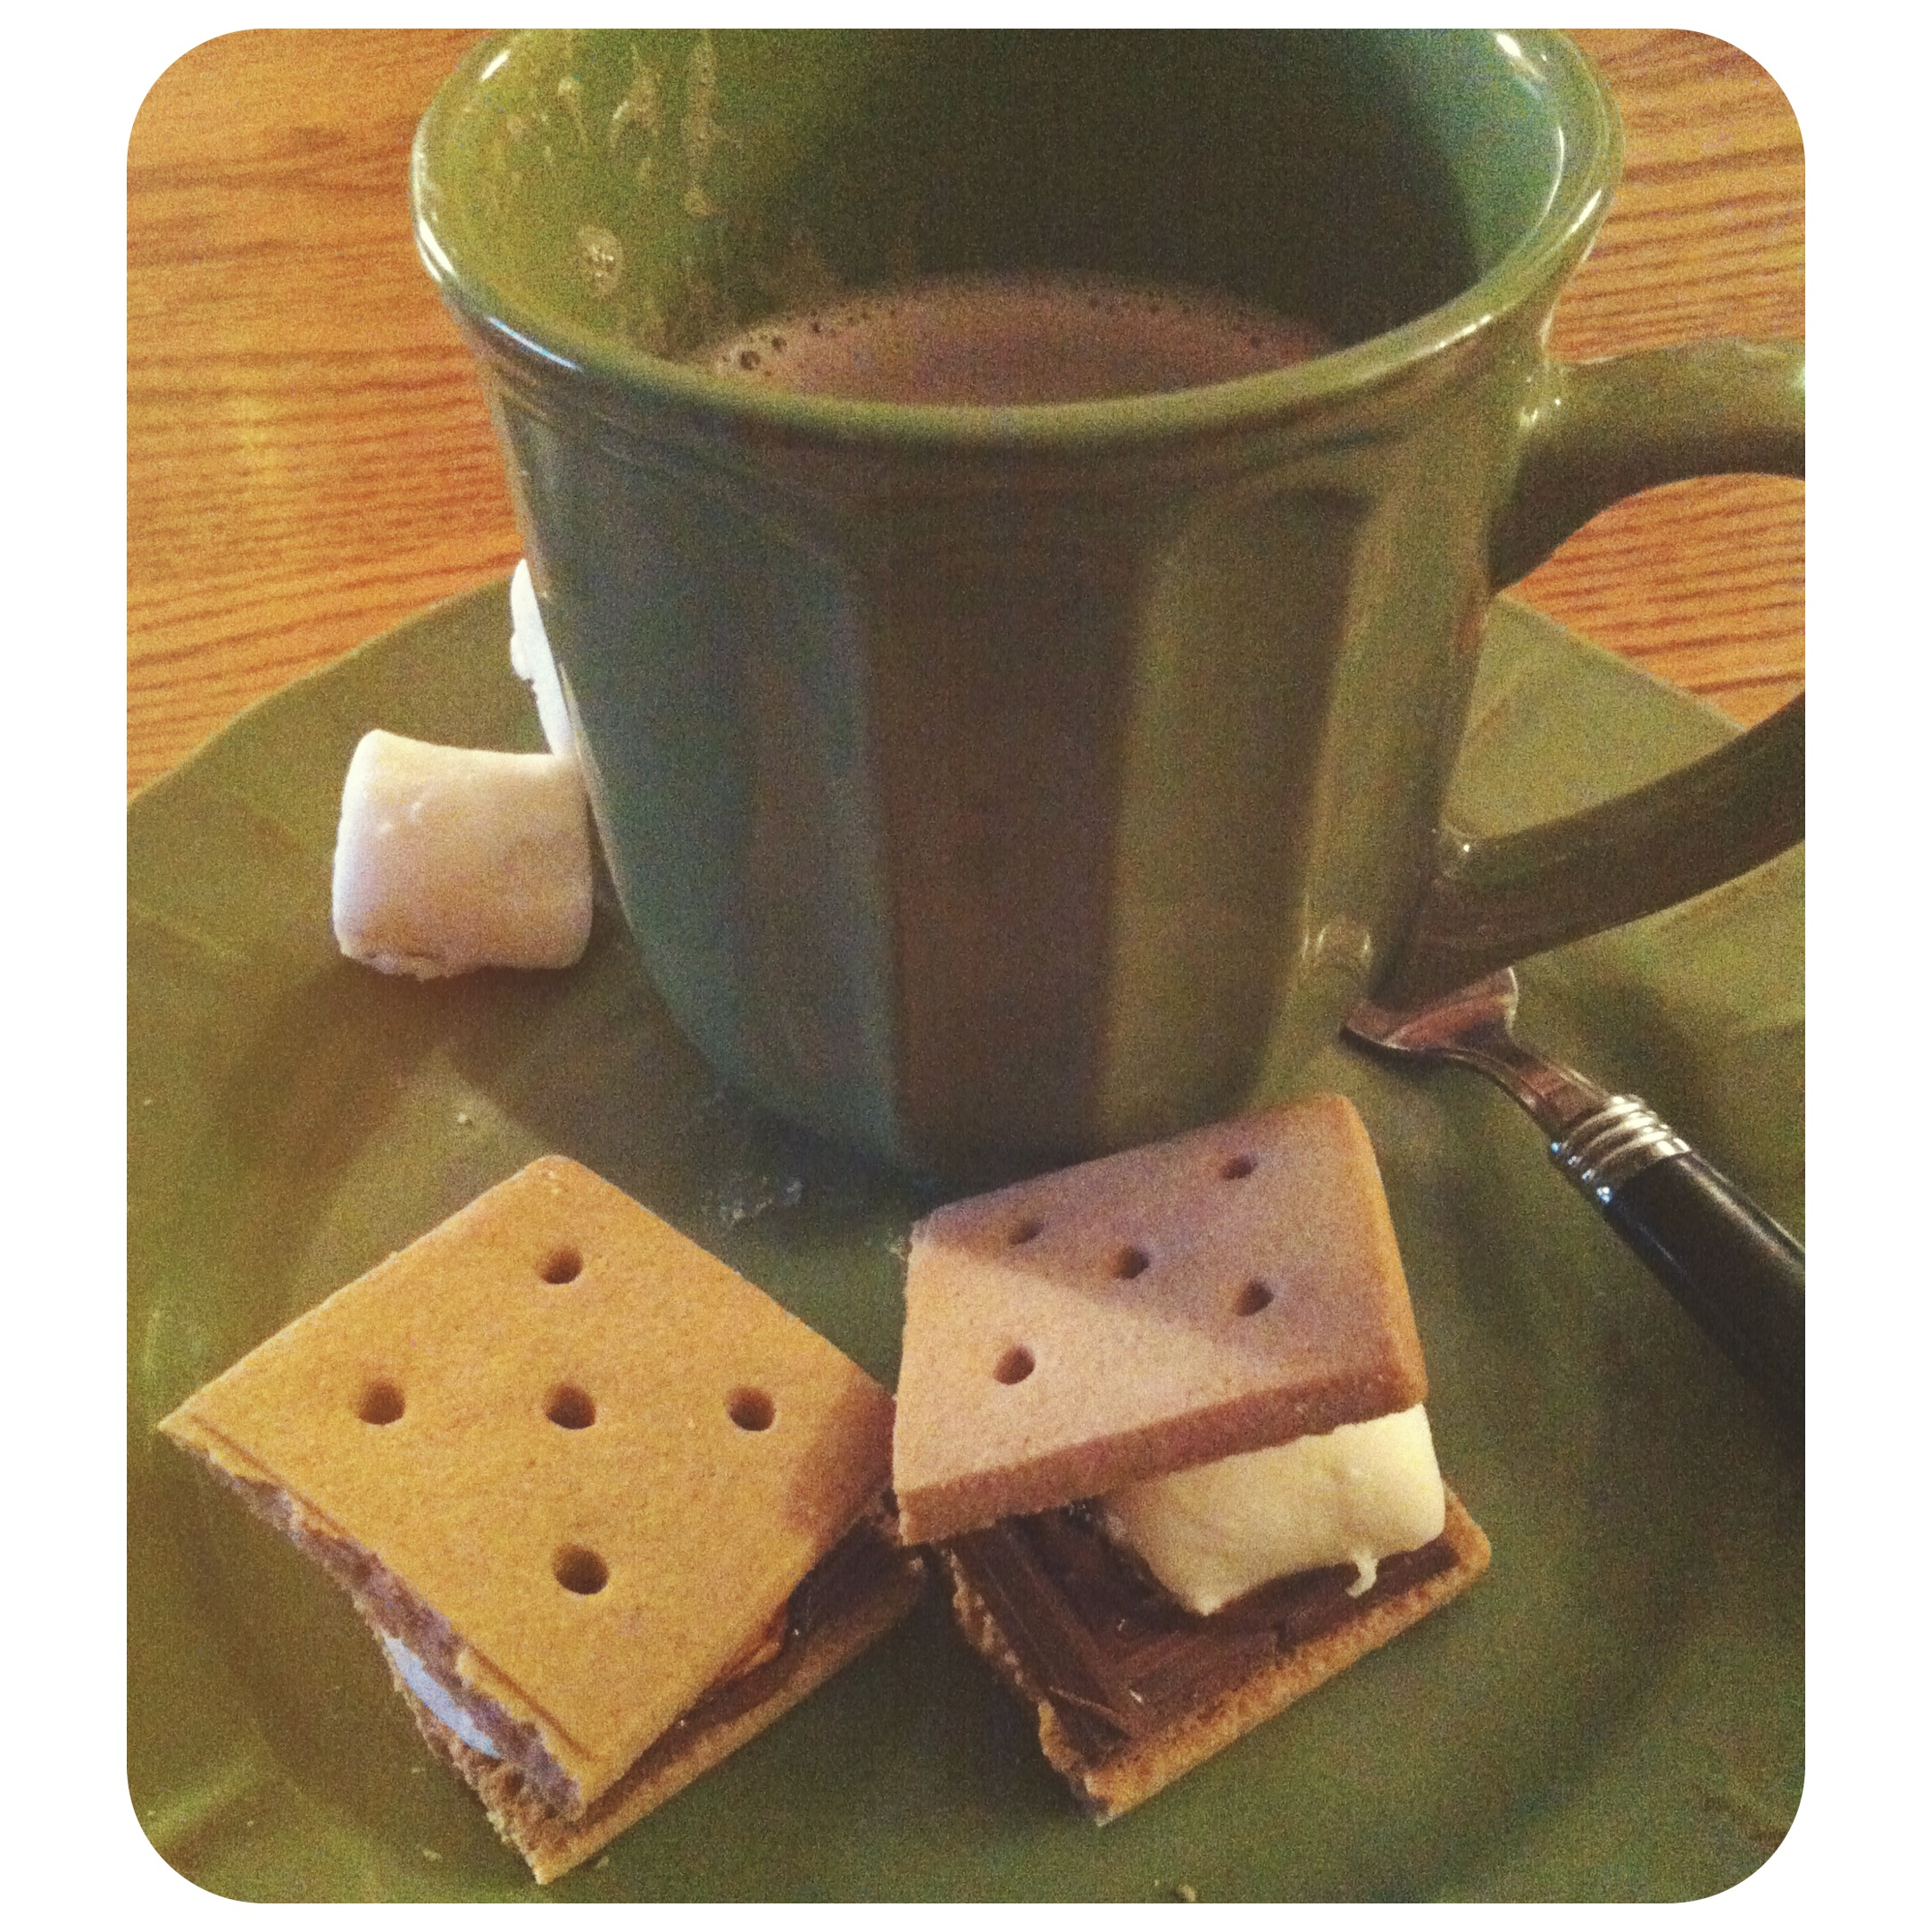 Gluten free smores & hot chocolate! (and vegan marshmallows)